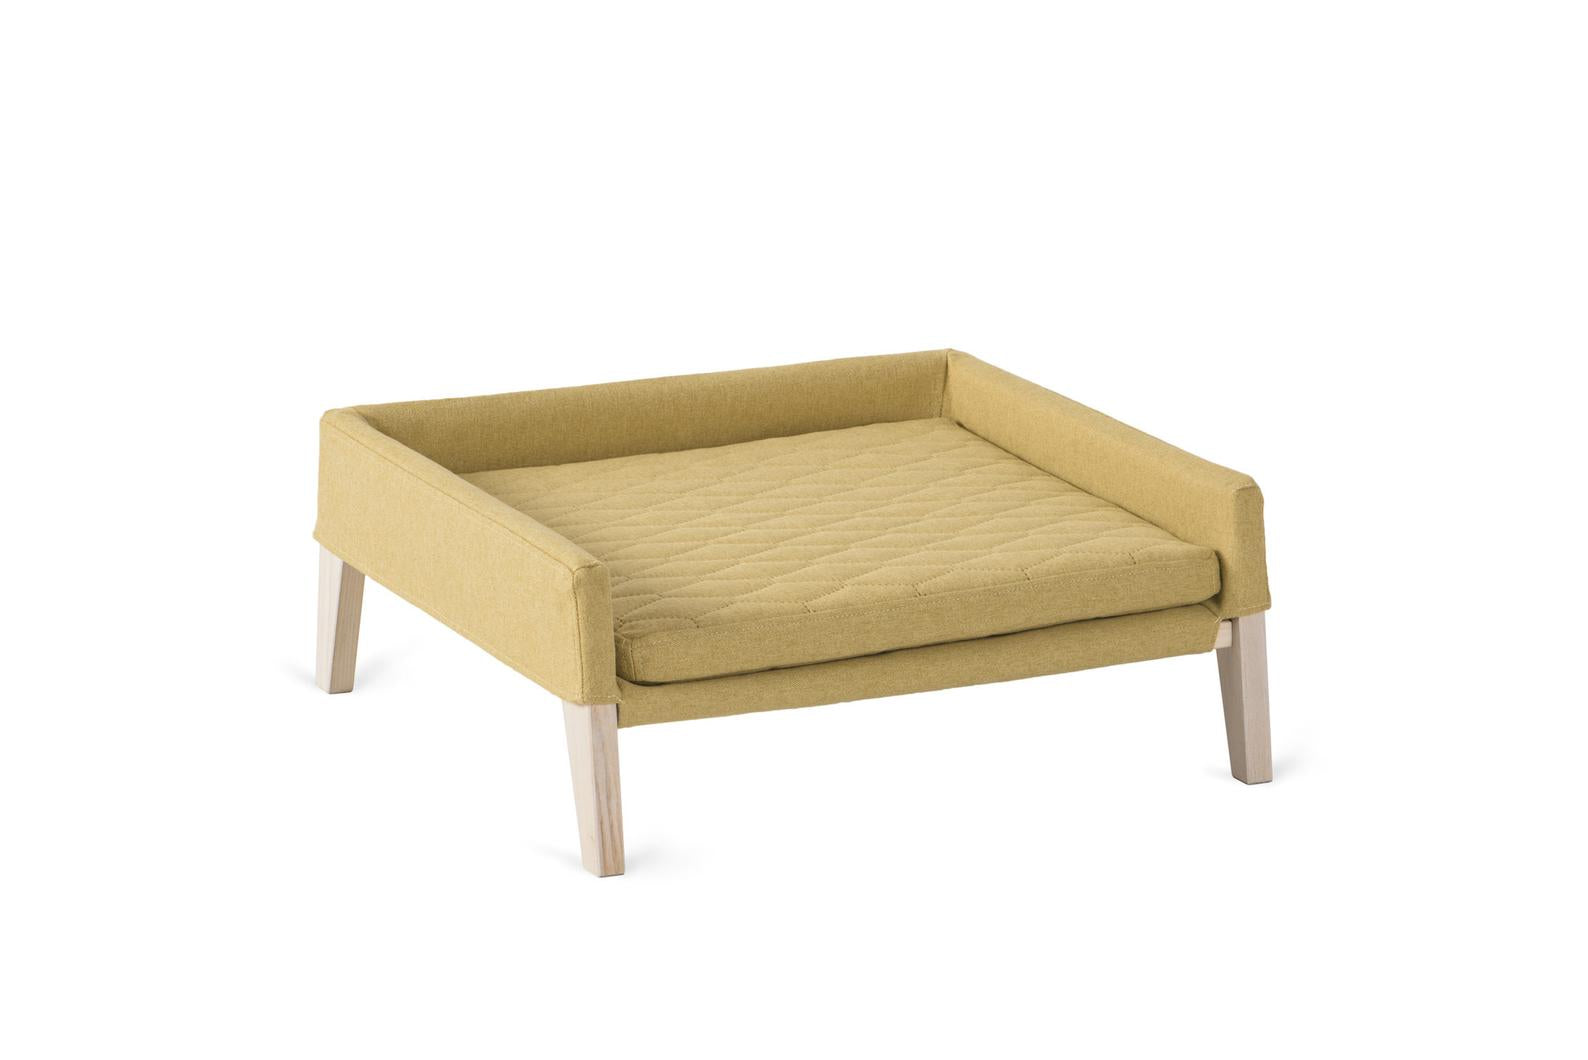 Lulu Luxury Cat Bed in Honey